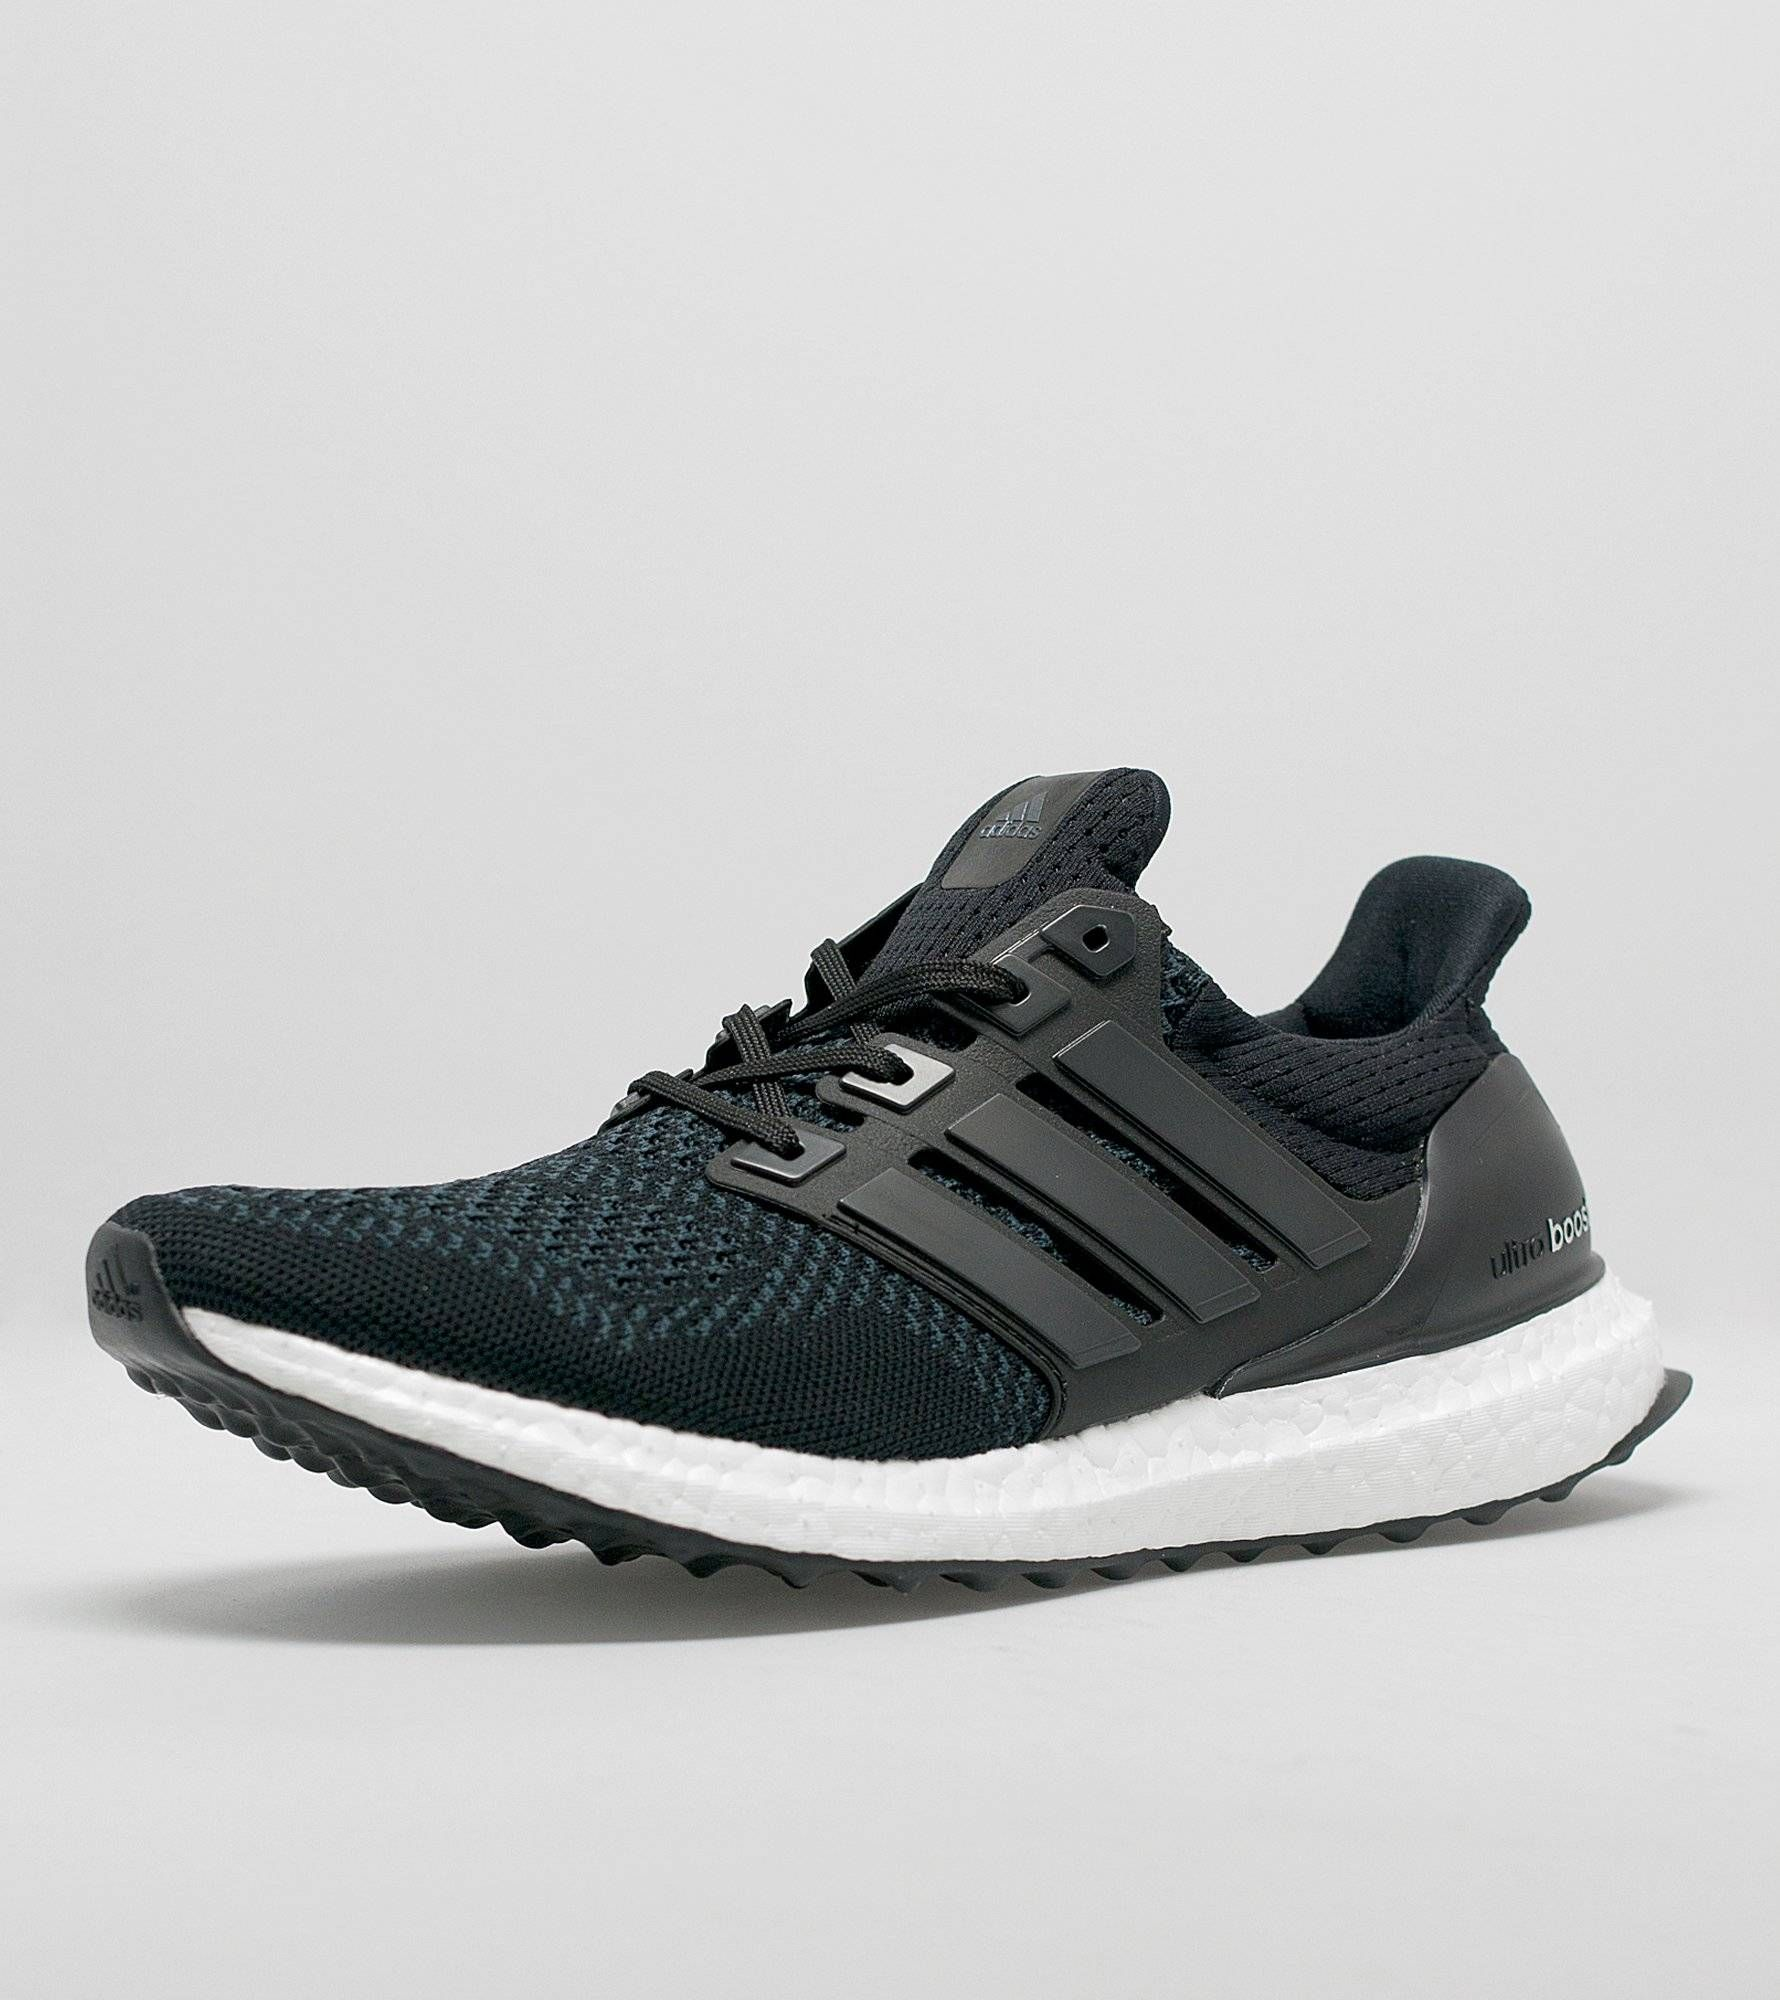 adidas Ultra Boost - find out more on our site. Find the freshest in trainers and clothing online now.